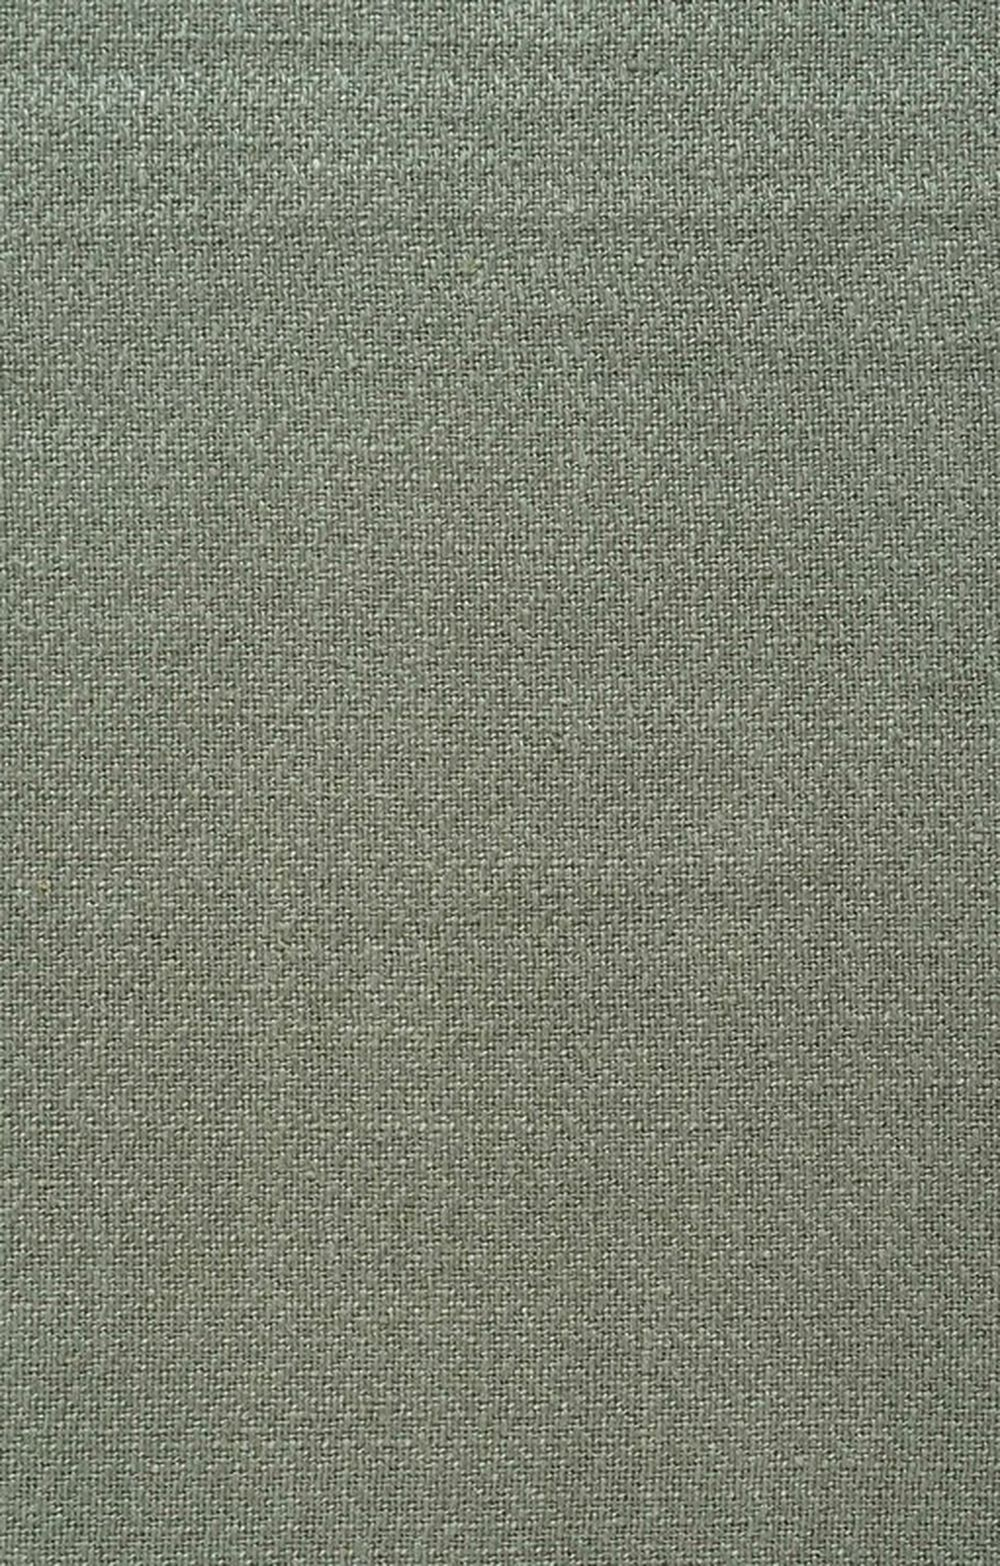 Photo of the fabric Simplicity* Sage swatch by James Dunlop. Use for Curtains, Accessory. Style of Plain, Texture